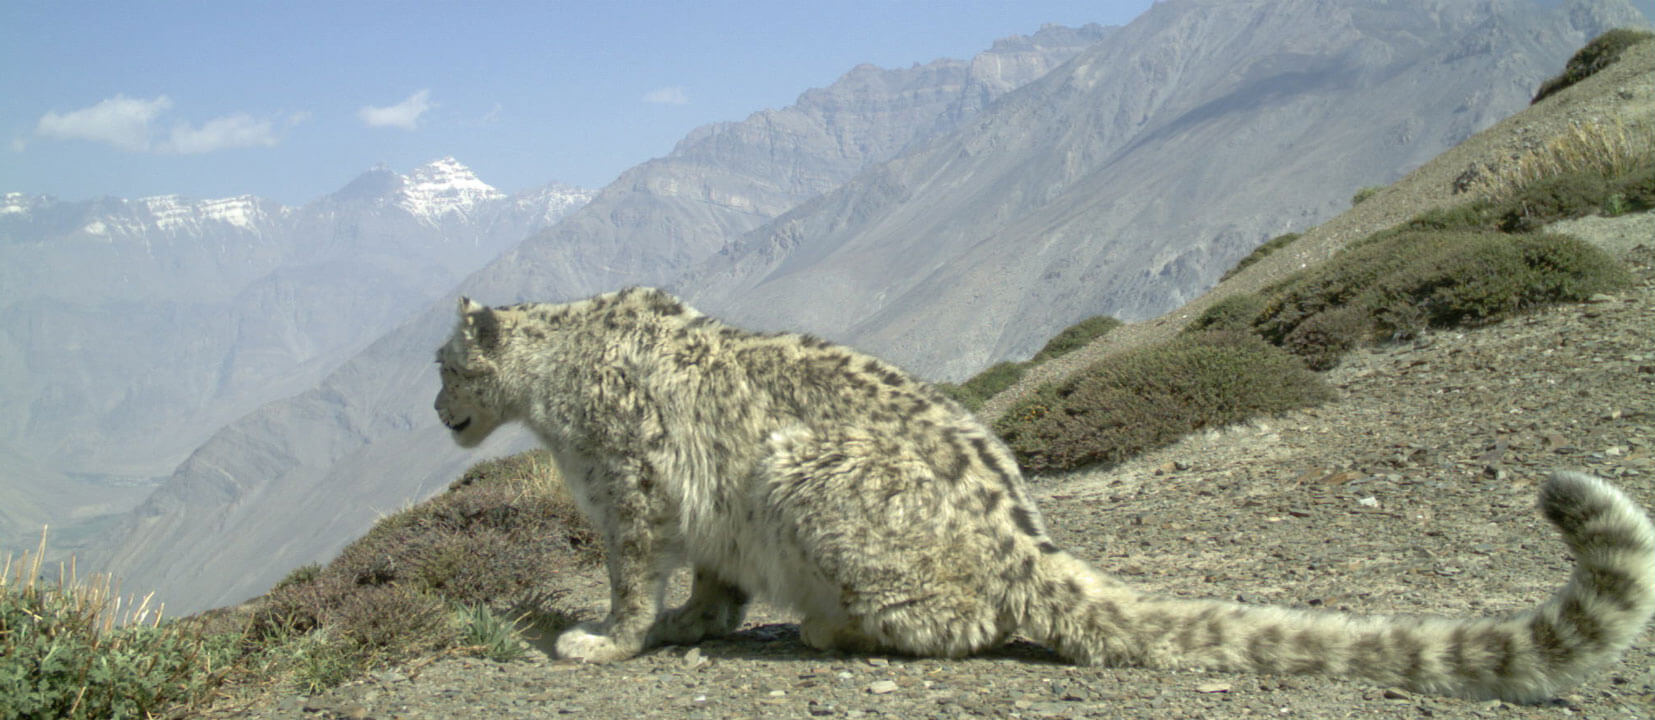 hight resolution of snow leopard facts